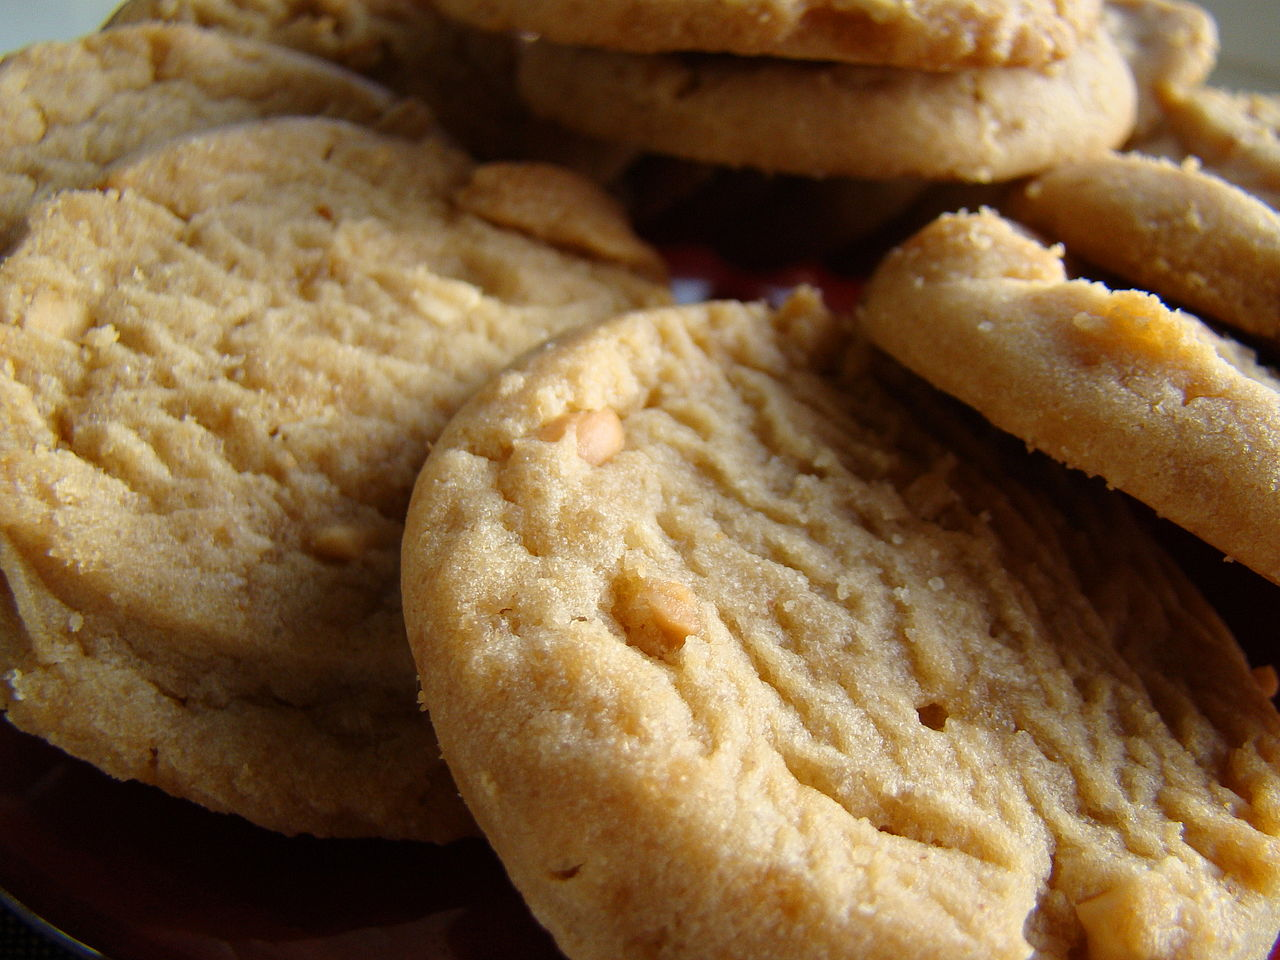 File:Peanut butter cookies, September 2009.jpg - Wikipedia